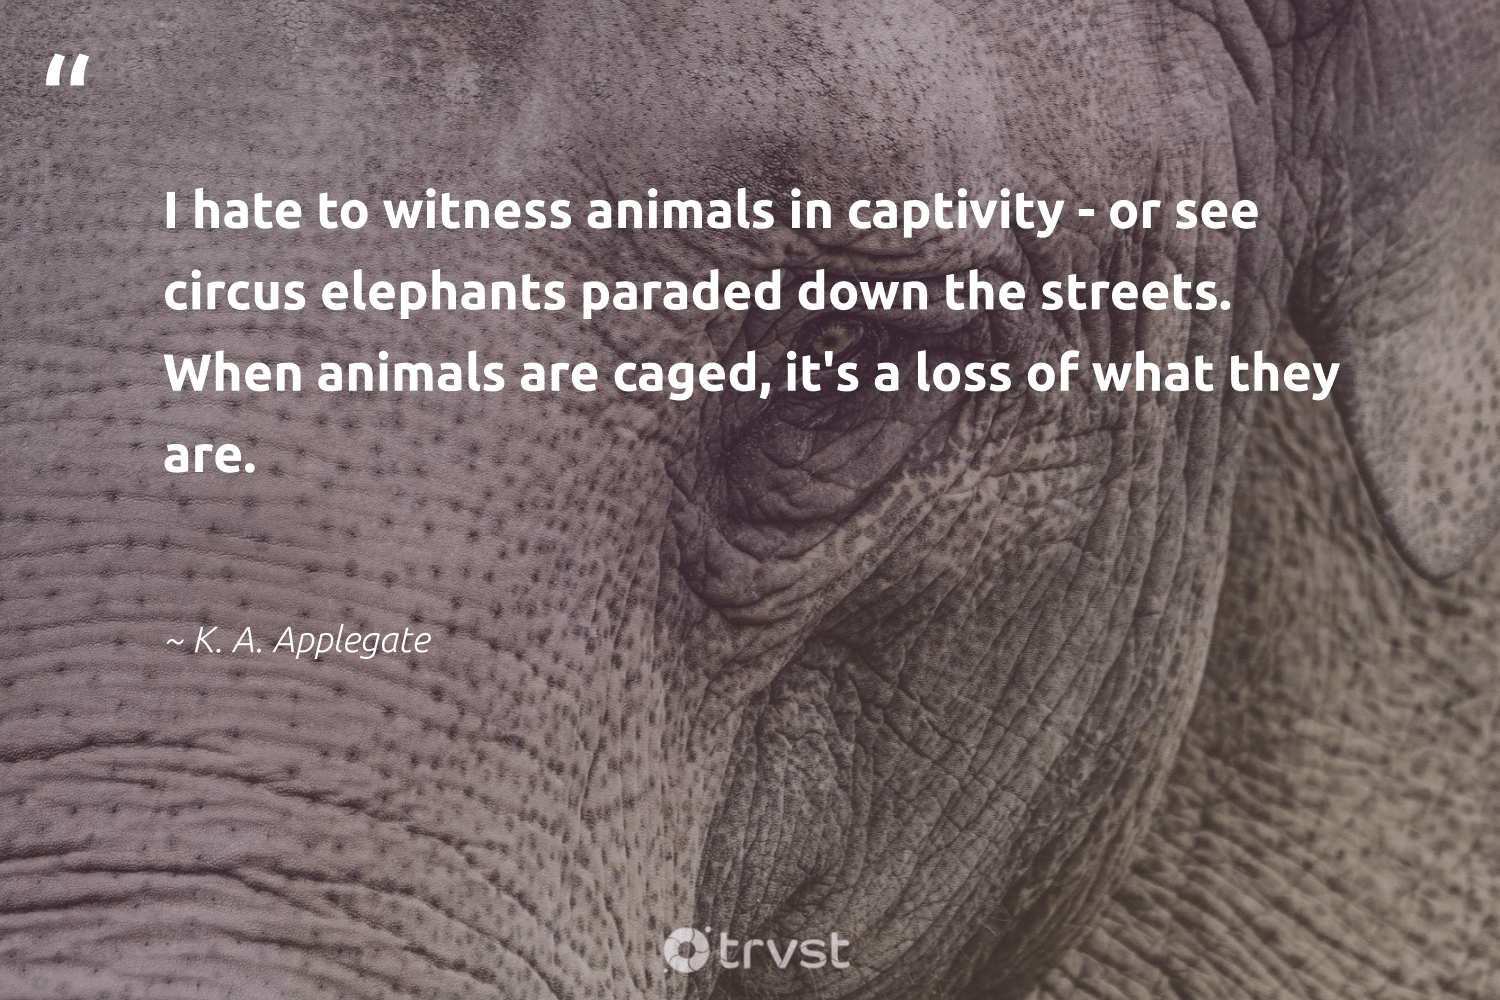 """""""I hate to witness animals in captivity - or see circus elephants paraded down the streets. When animals are caged, it's a loss of what they are.""""  - K. A. Applegate #trvst #quotes #animals #elephants #wildlife #conservation #forscience #collectiveaction #animallovers #elephantlover #natural #socialchange"""